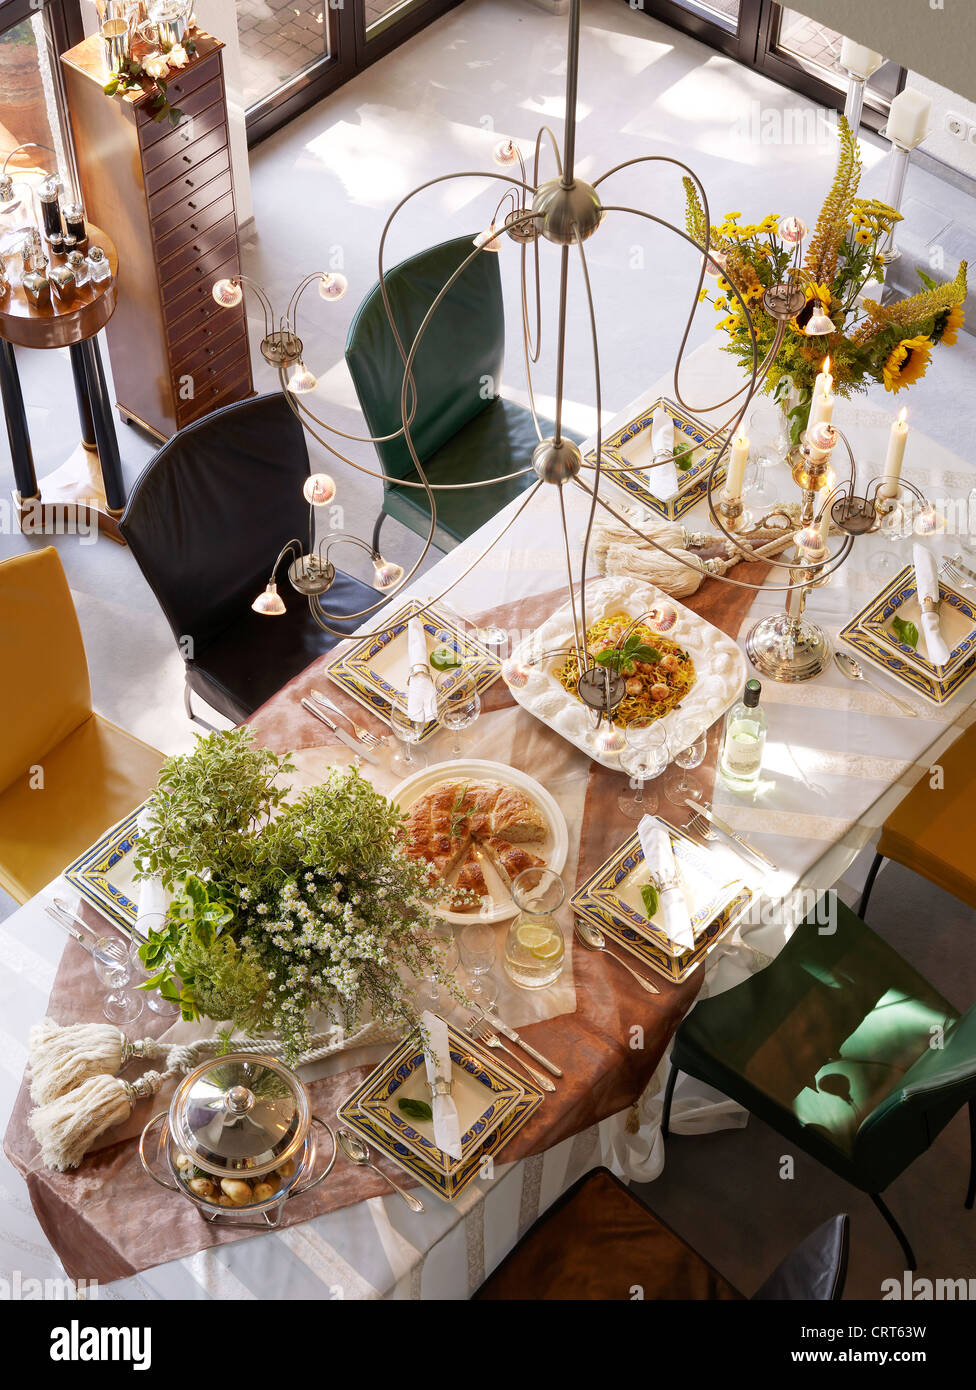 luxury, well-laid table - Stock Image